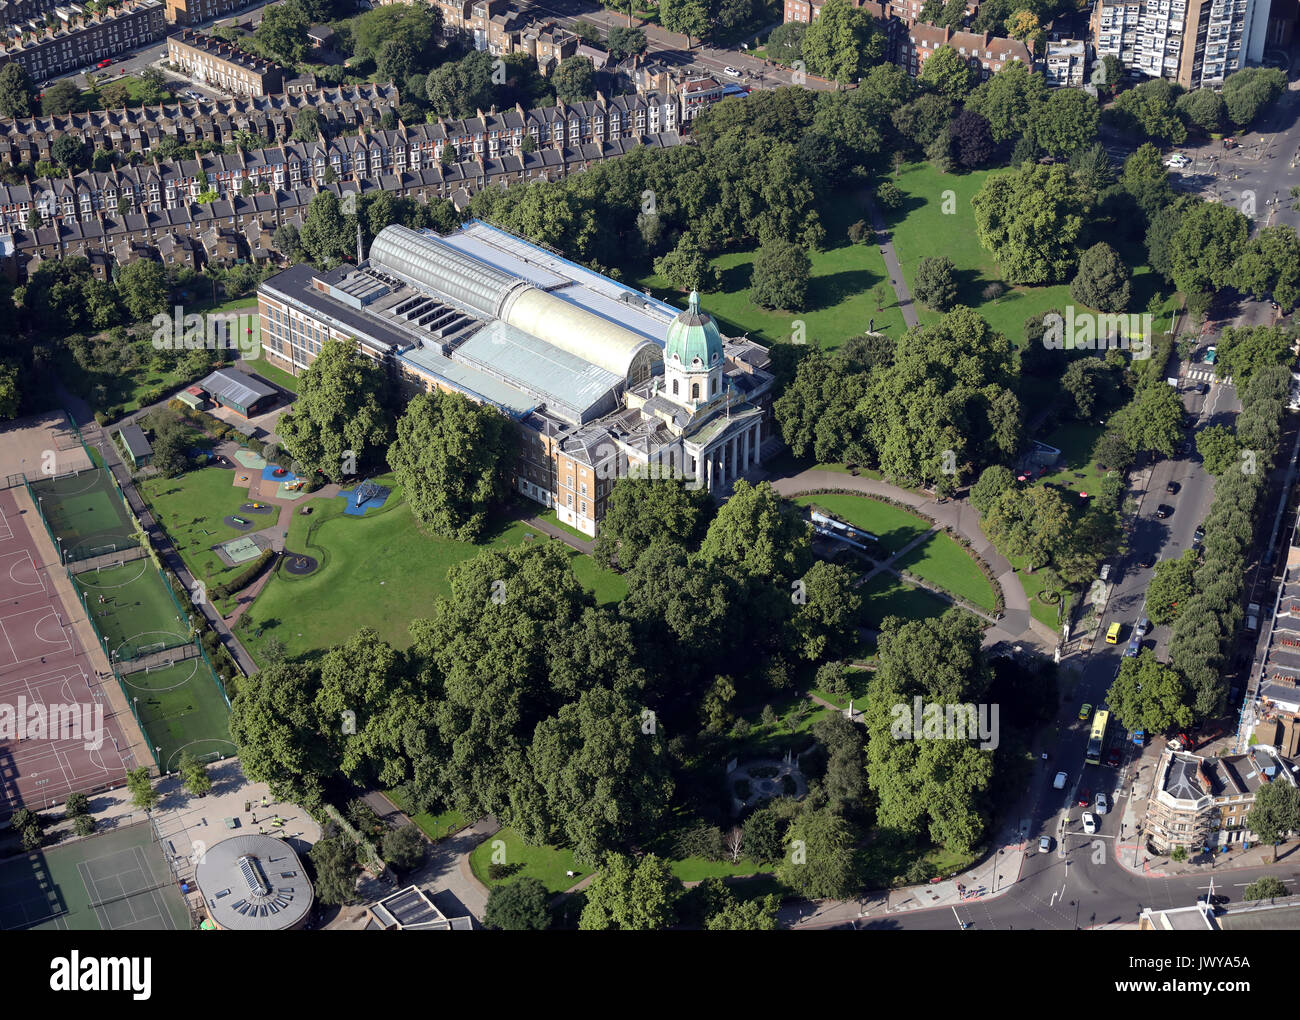 aerial view of The Imperial War Museum, London SE1, UK - Stock Image